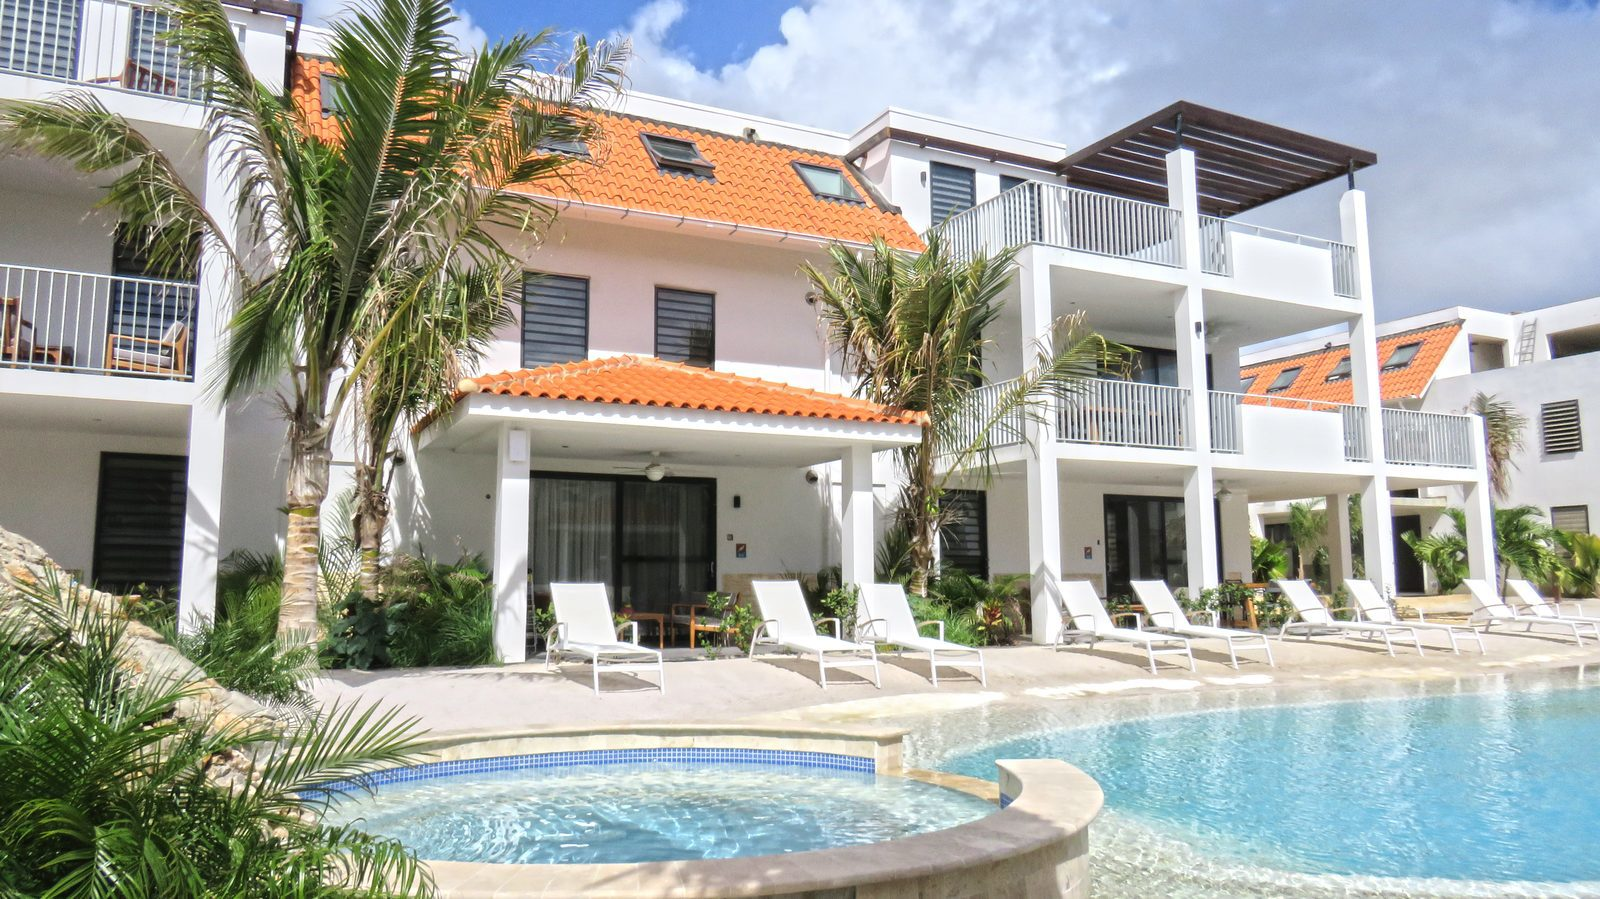 The good resorts on Bonaire? Resort Bonaire is one of them and made to enjoy and relax during your vacation. Want to stay in a new apartment?